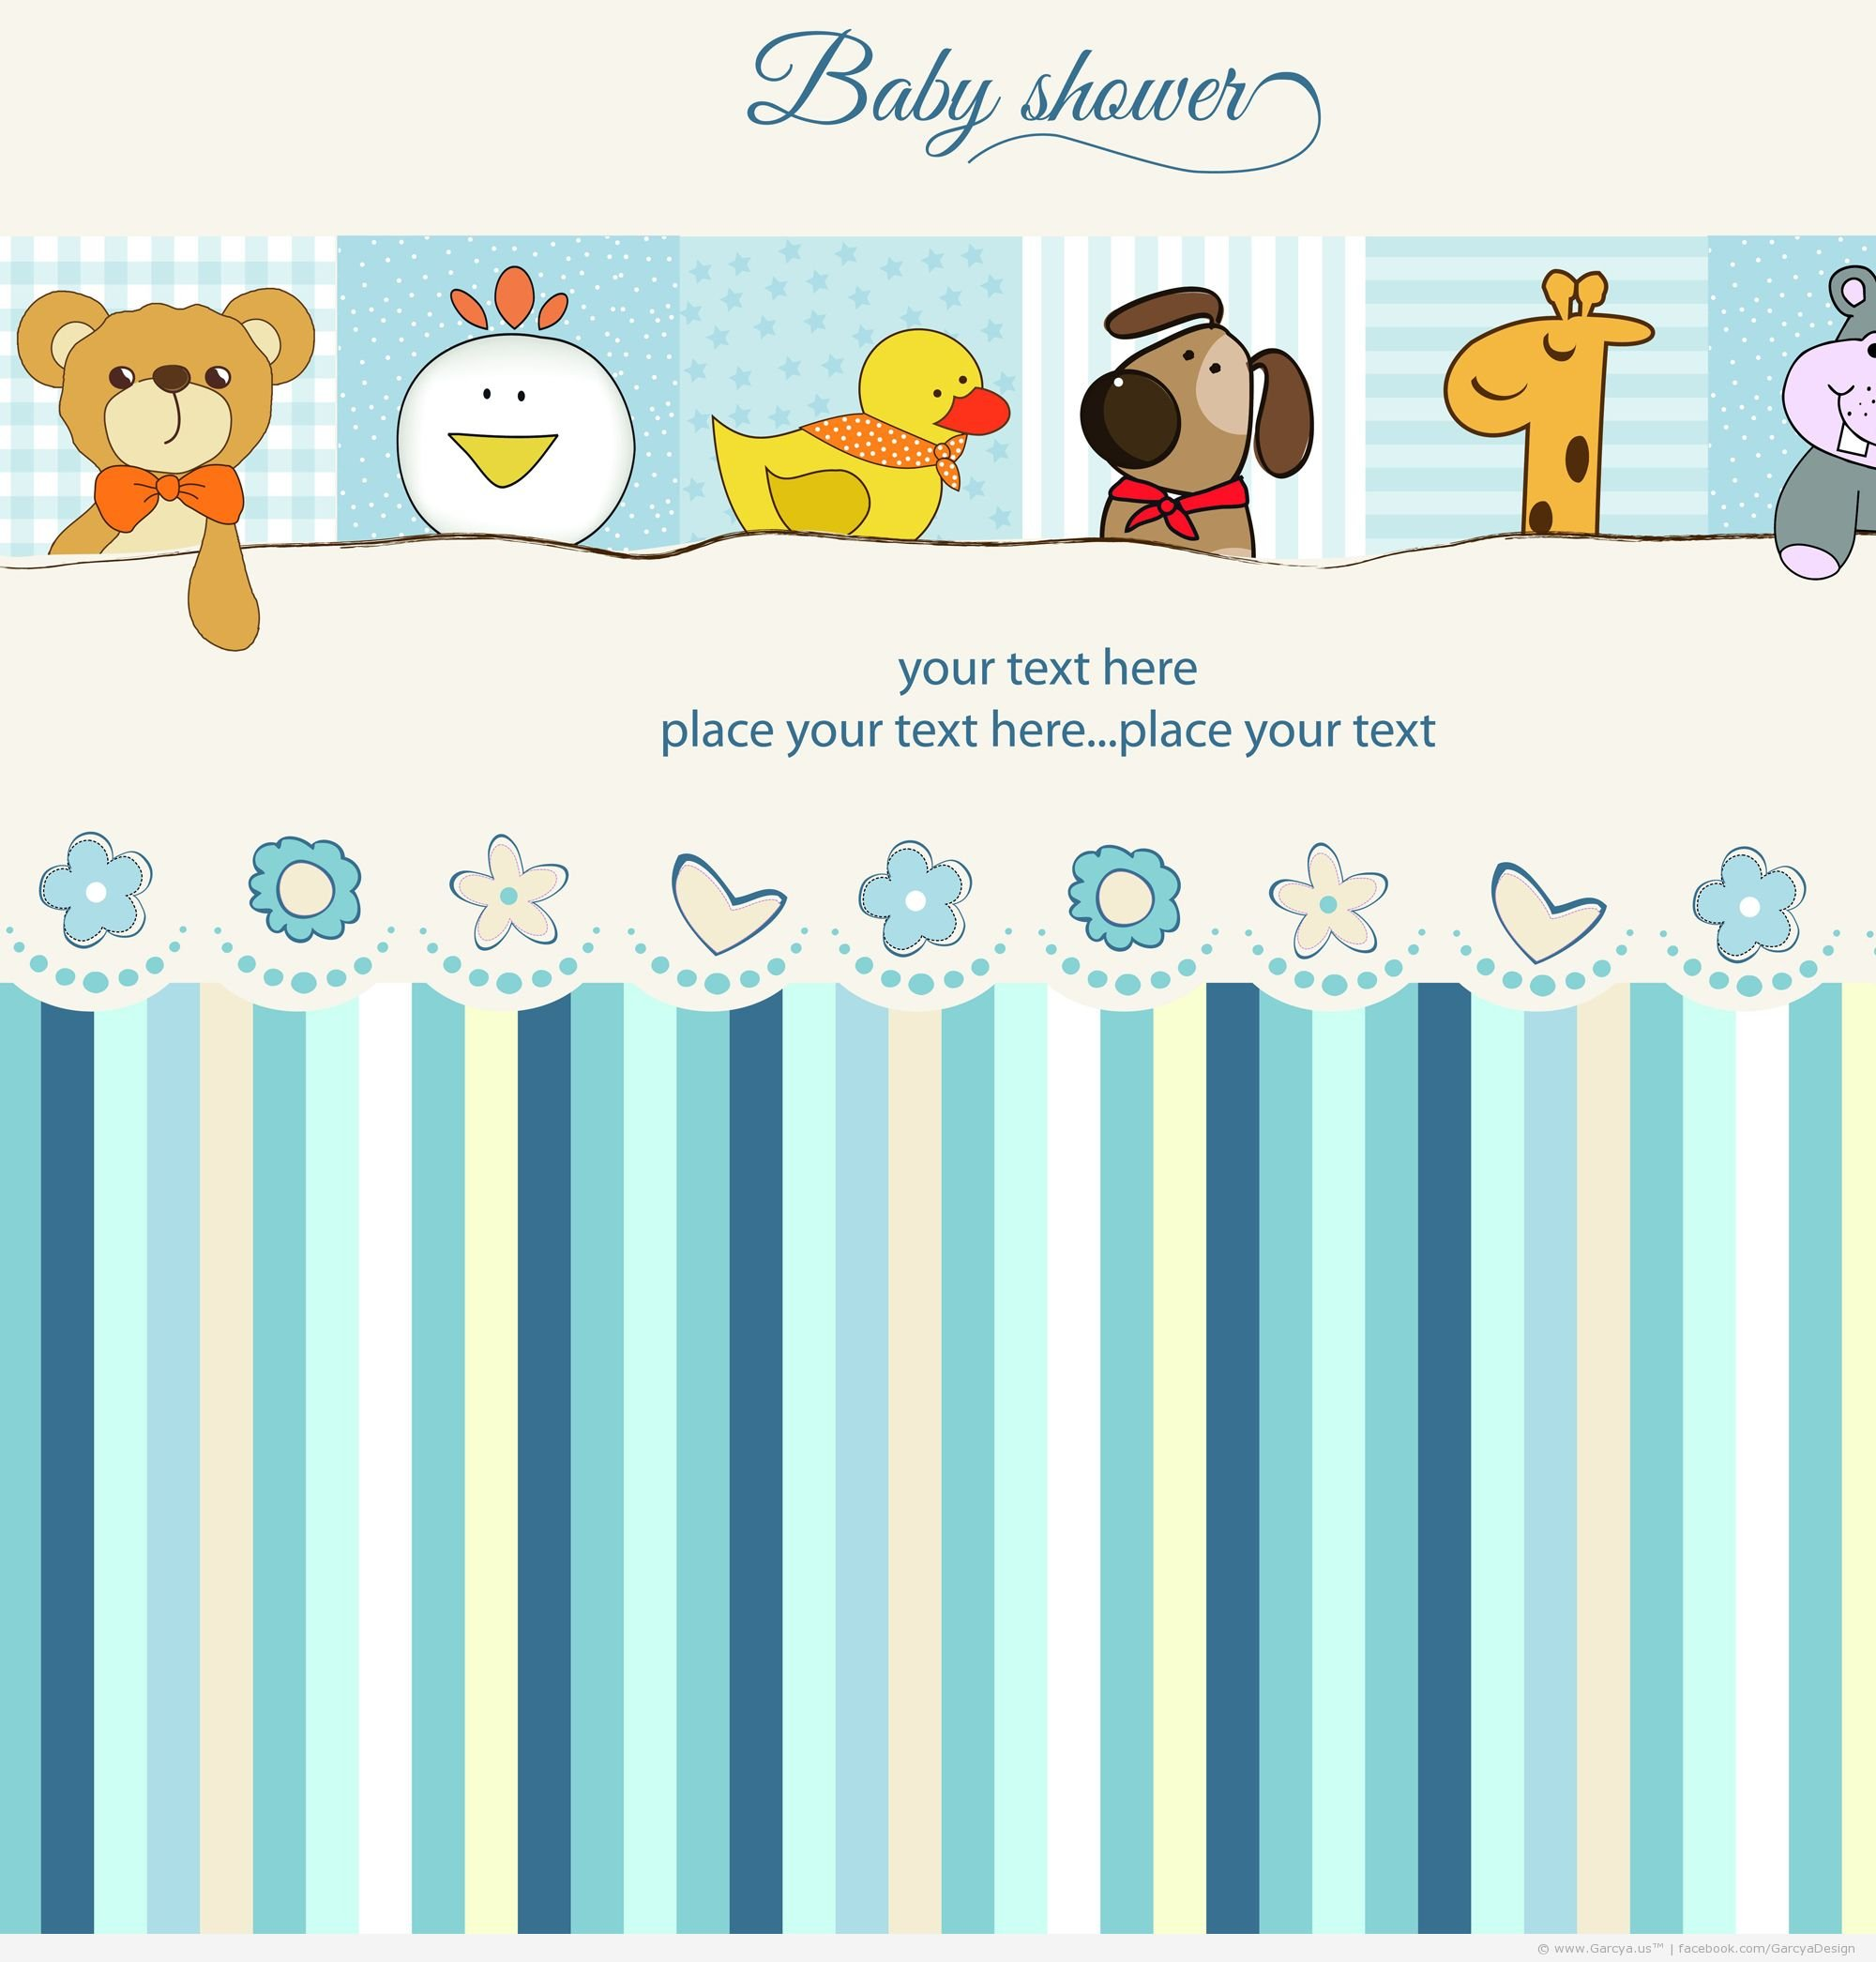 baby shower wallpaper images wallpapersafari